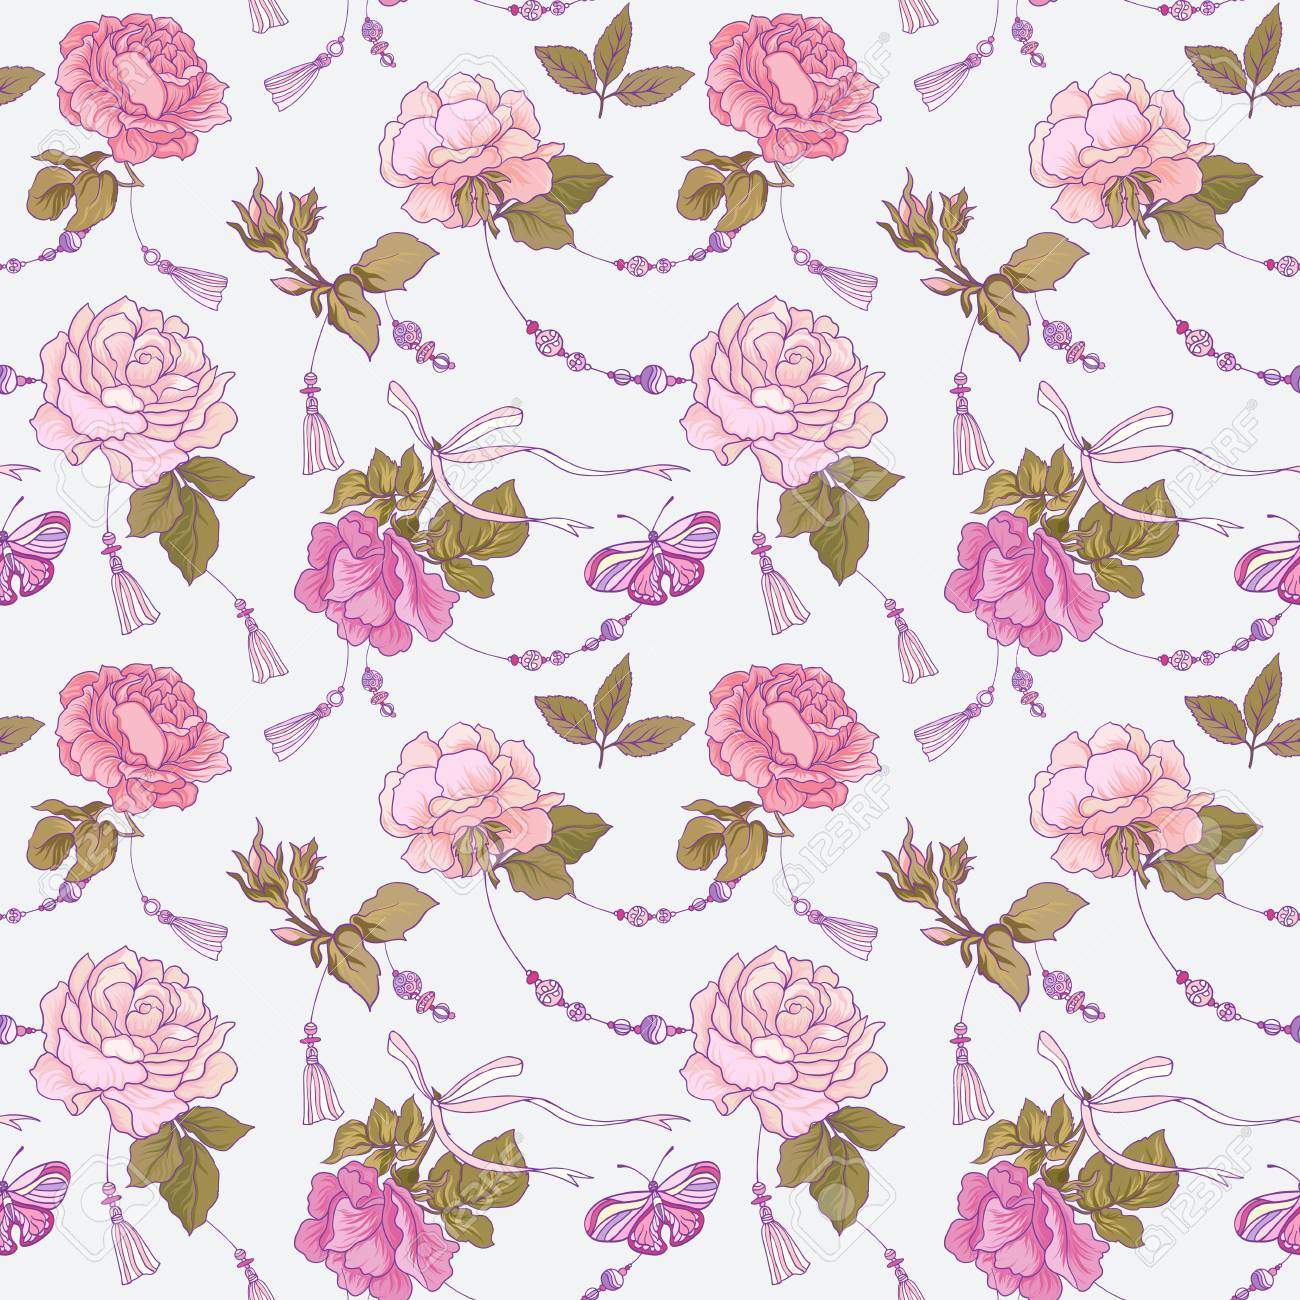 Seamless Patterns With Rose Flowers And Butterflies In Pink And